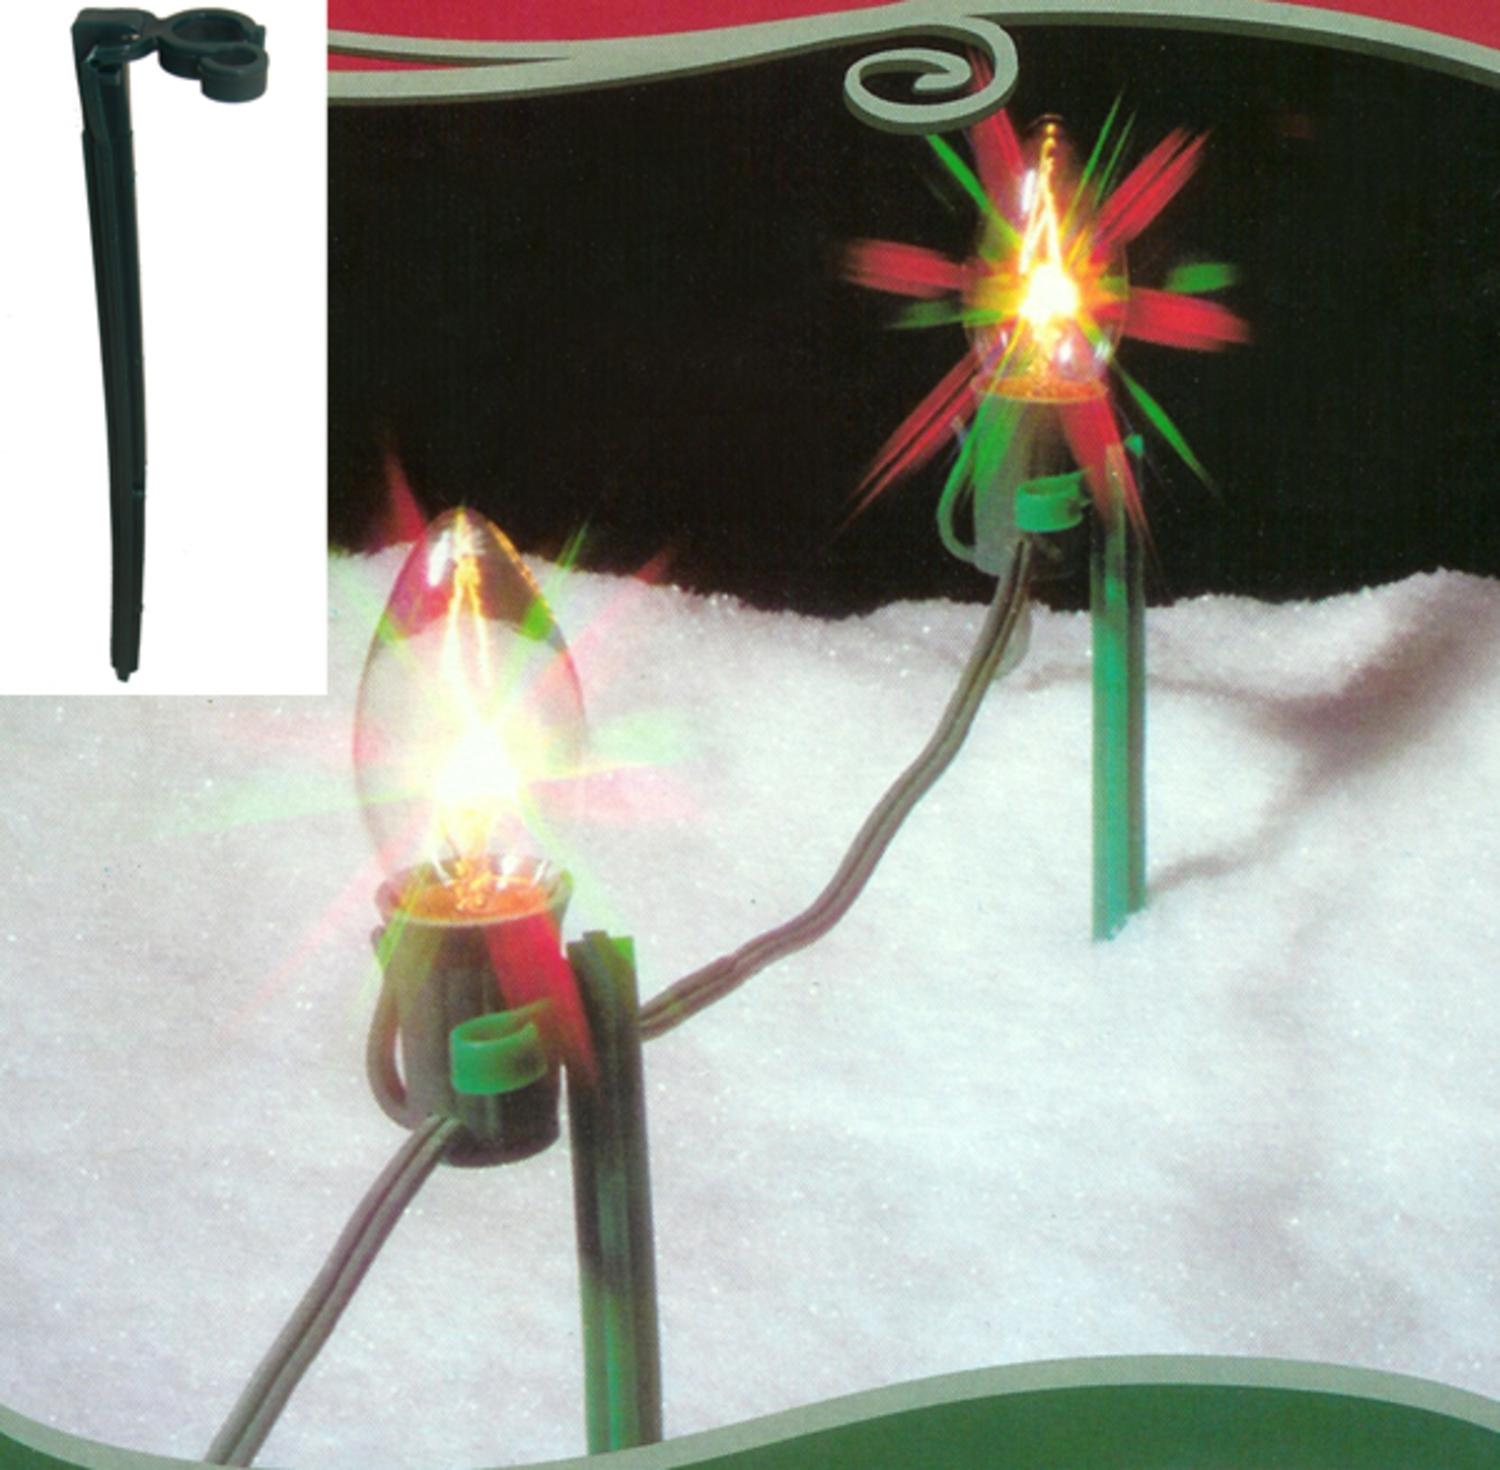 Pack of 25 Green Christmas Light Stakes for Outdoor Decorating 8""